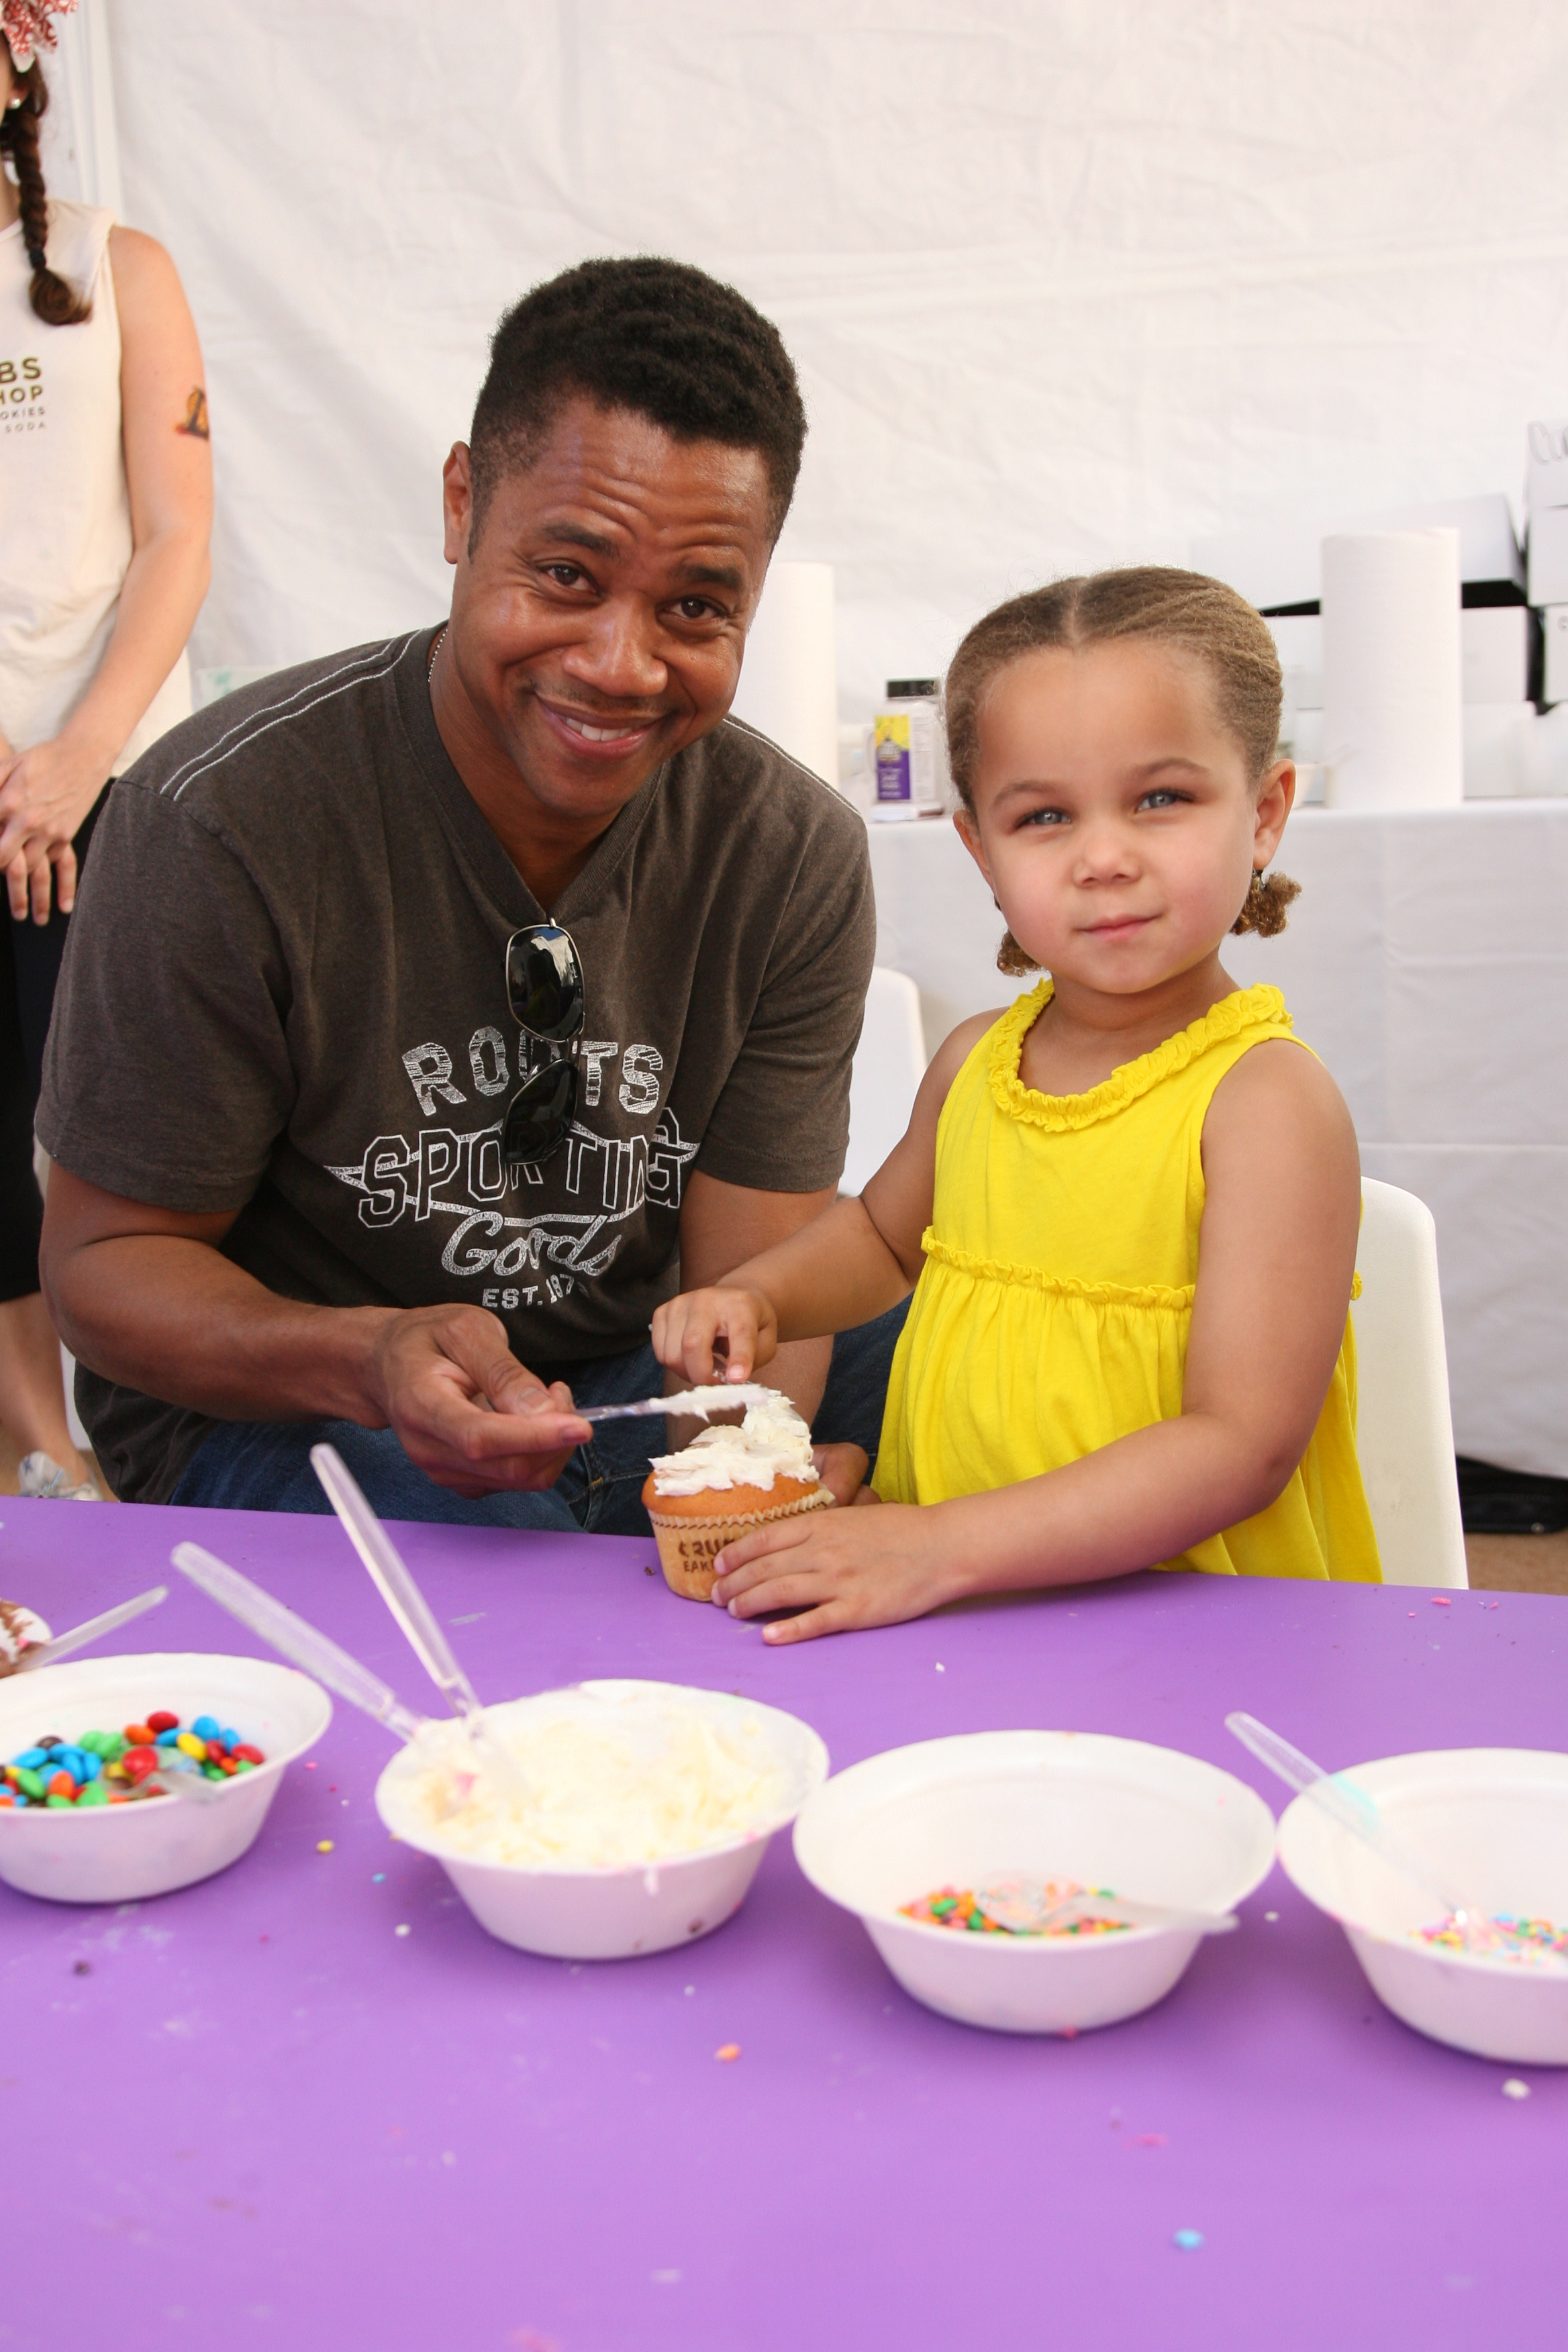 Cuba Gooding Jr. on whether or not any of his three kids dance: